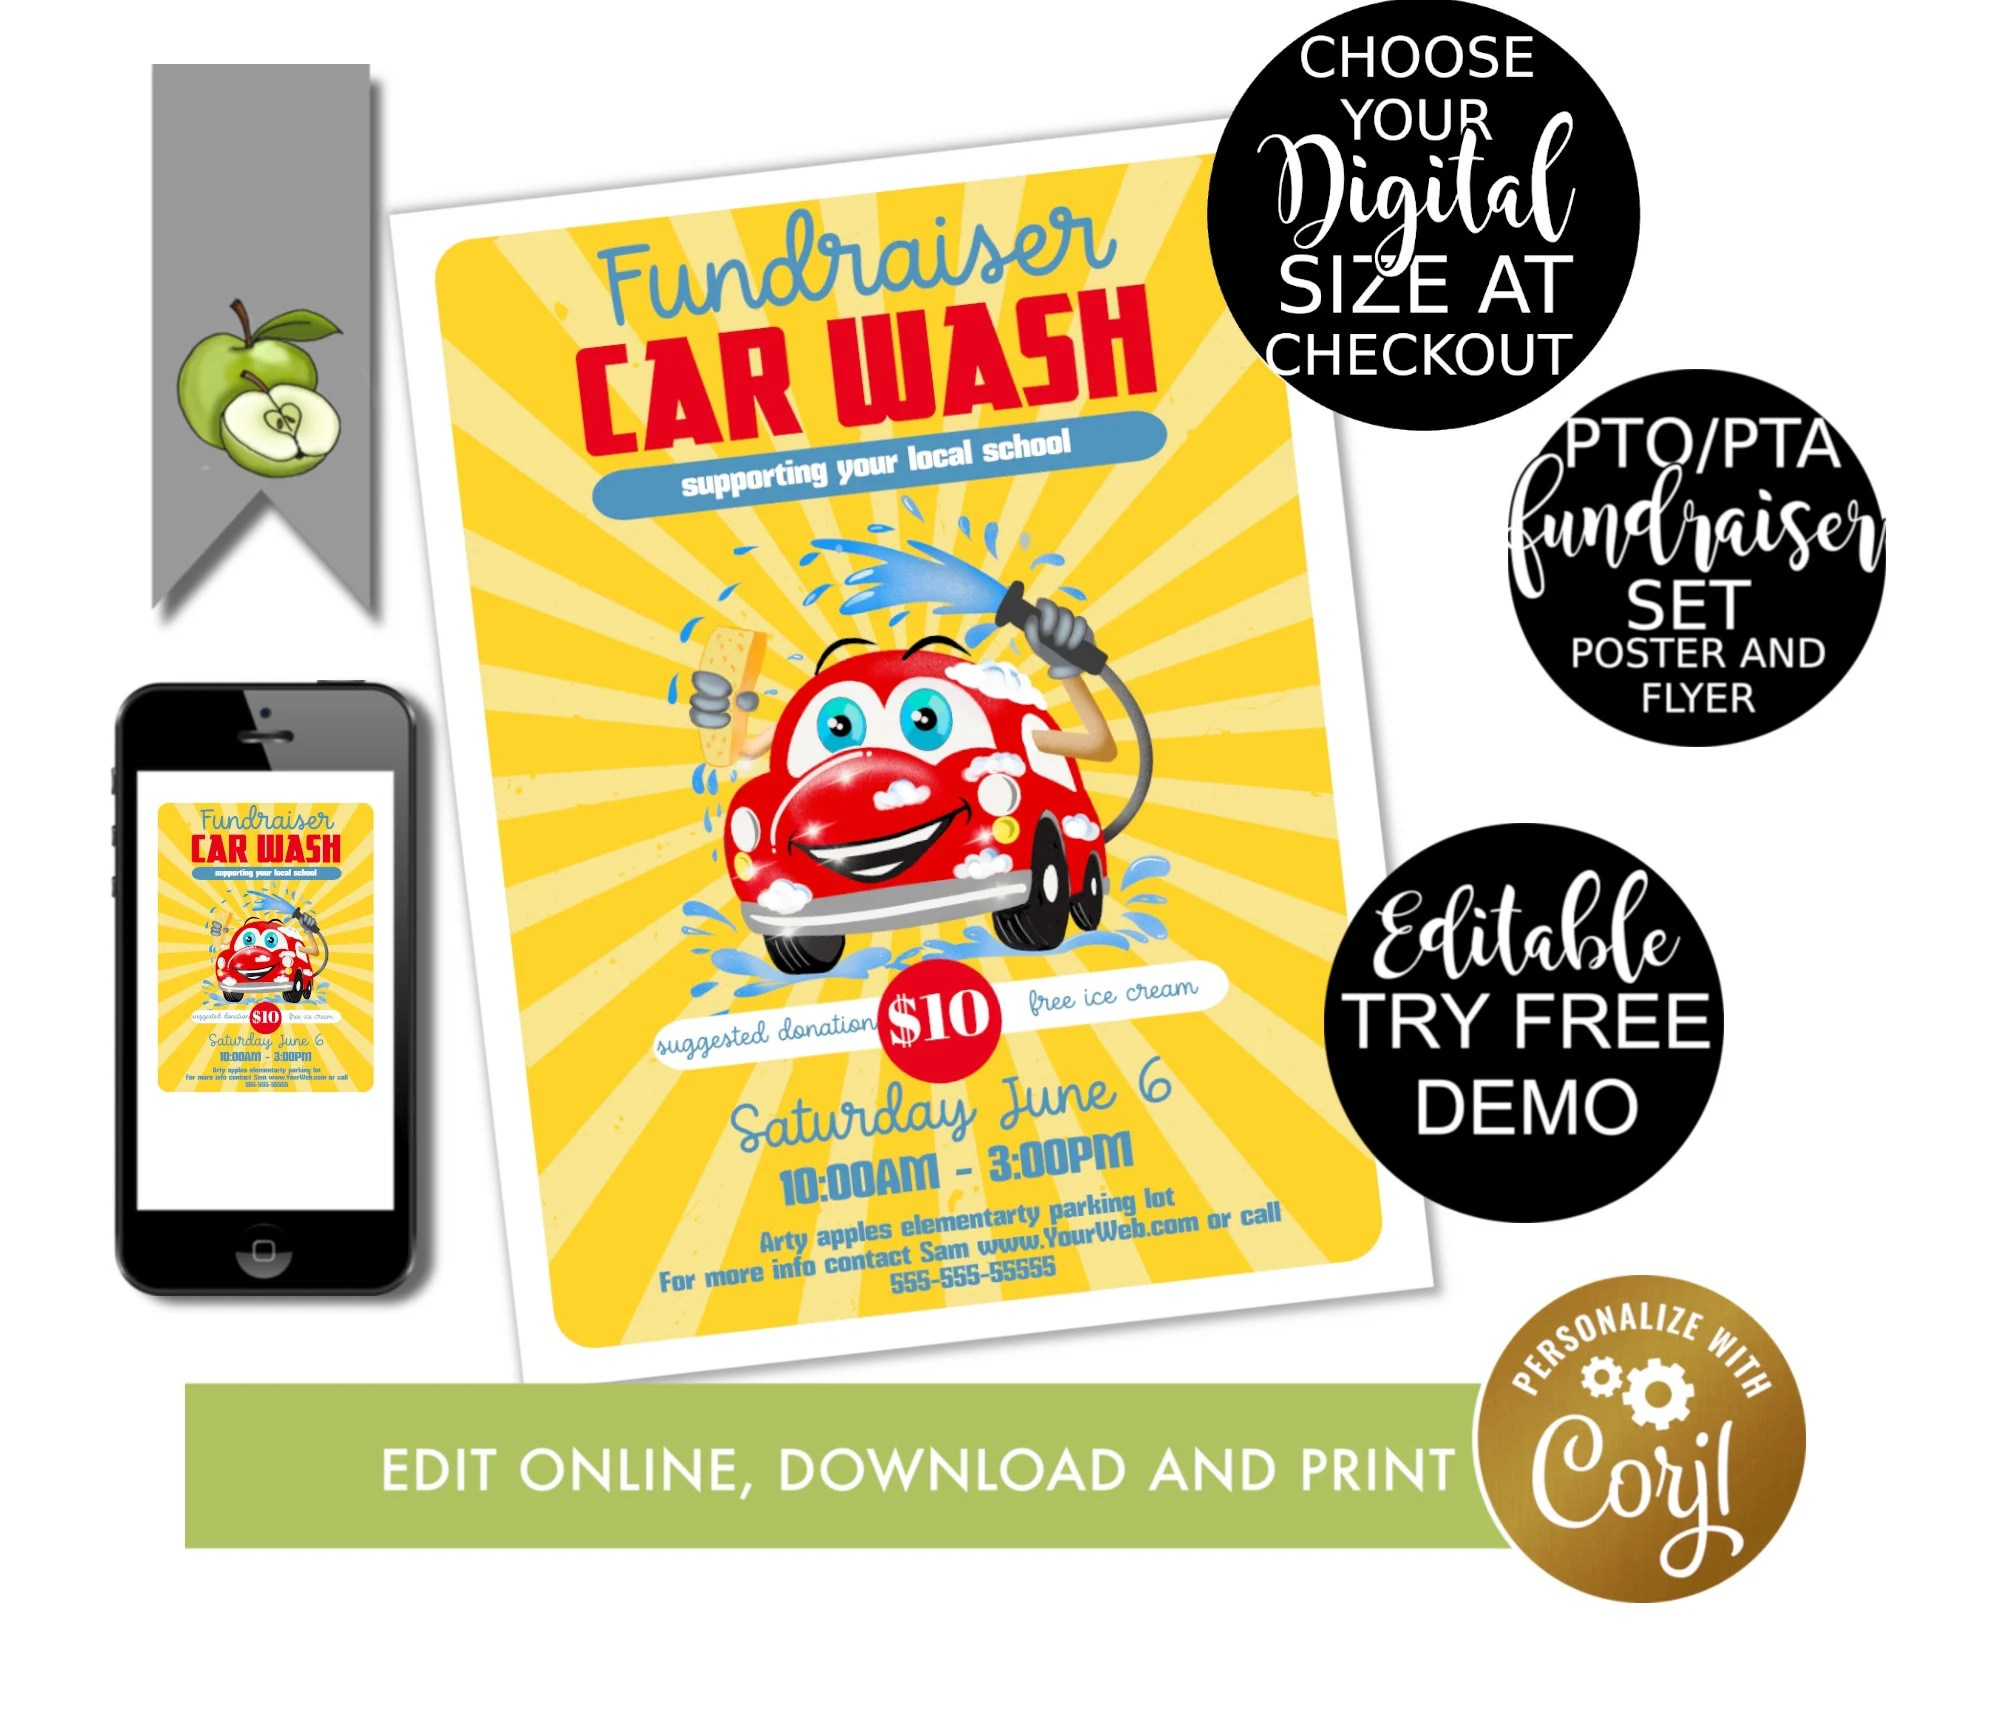 Car Wash Theme Event Flyer Printable Pto Fundraiser Pta